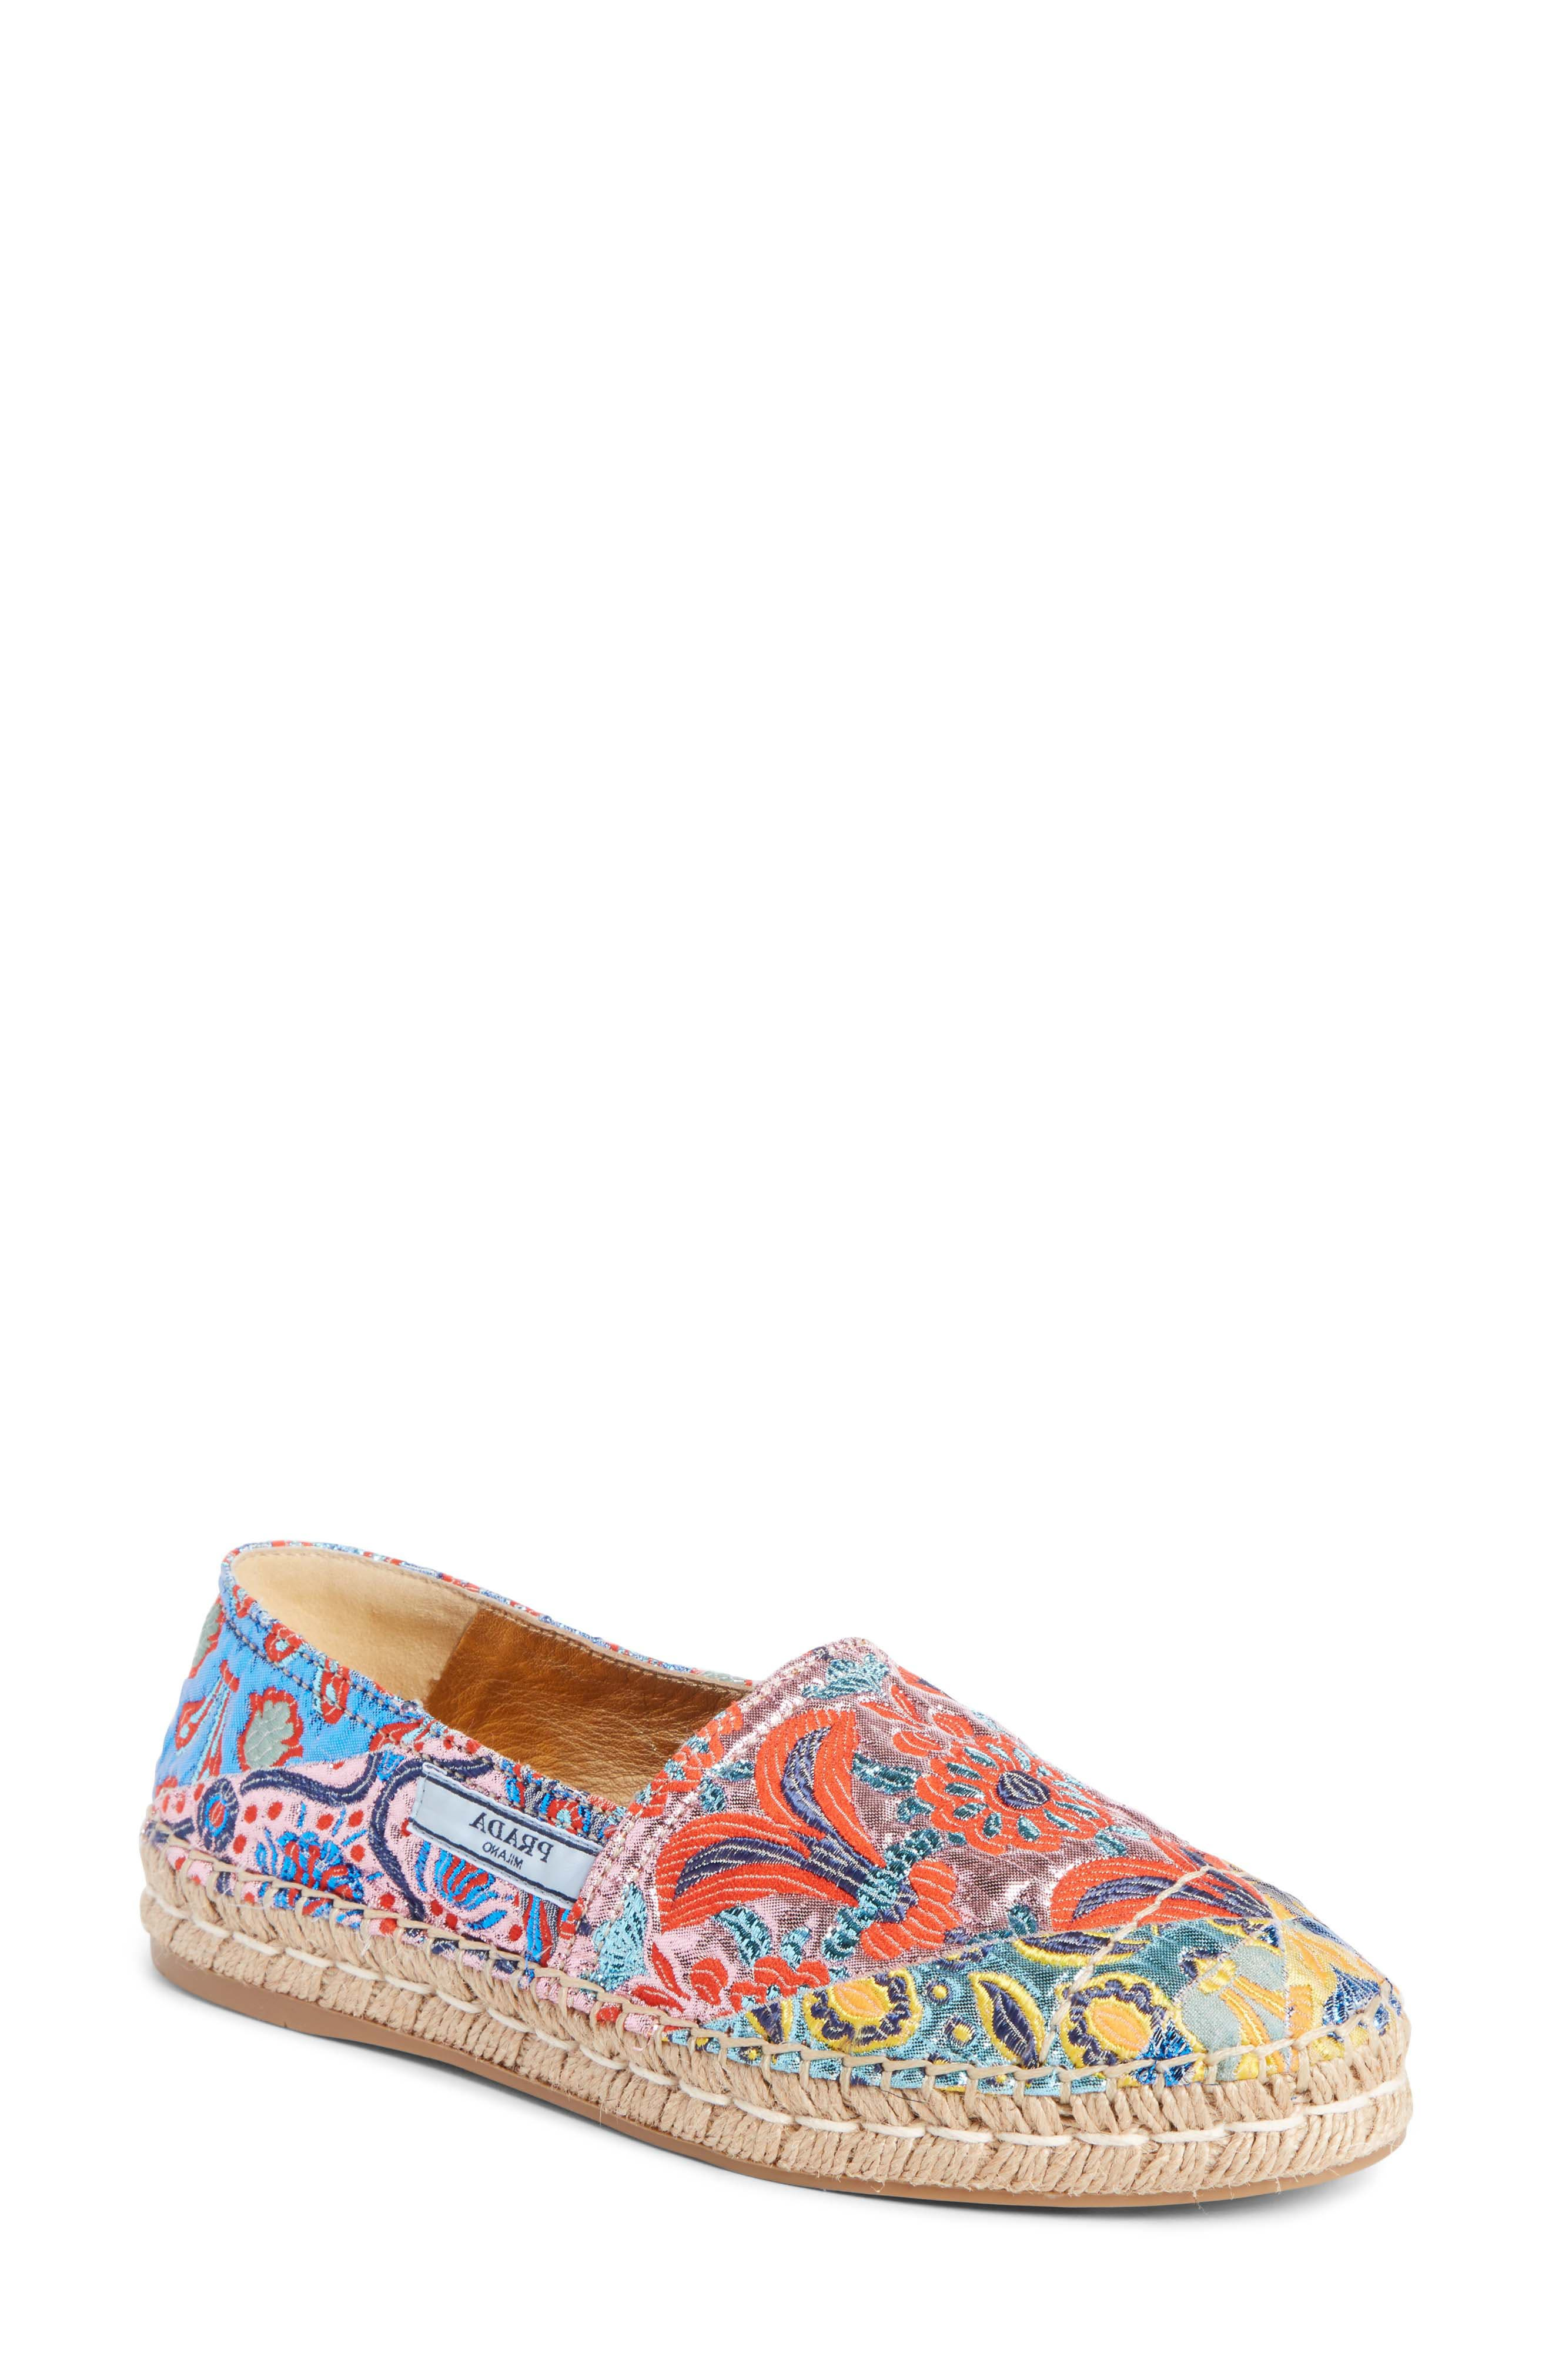 Floral Embroidered Espadrille Flat,                             Main thumbnail 1, color,                             Pink Multi